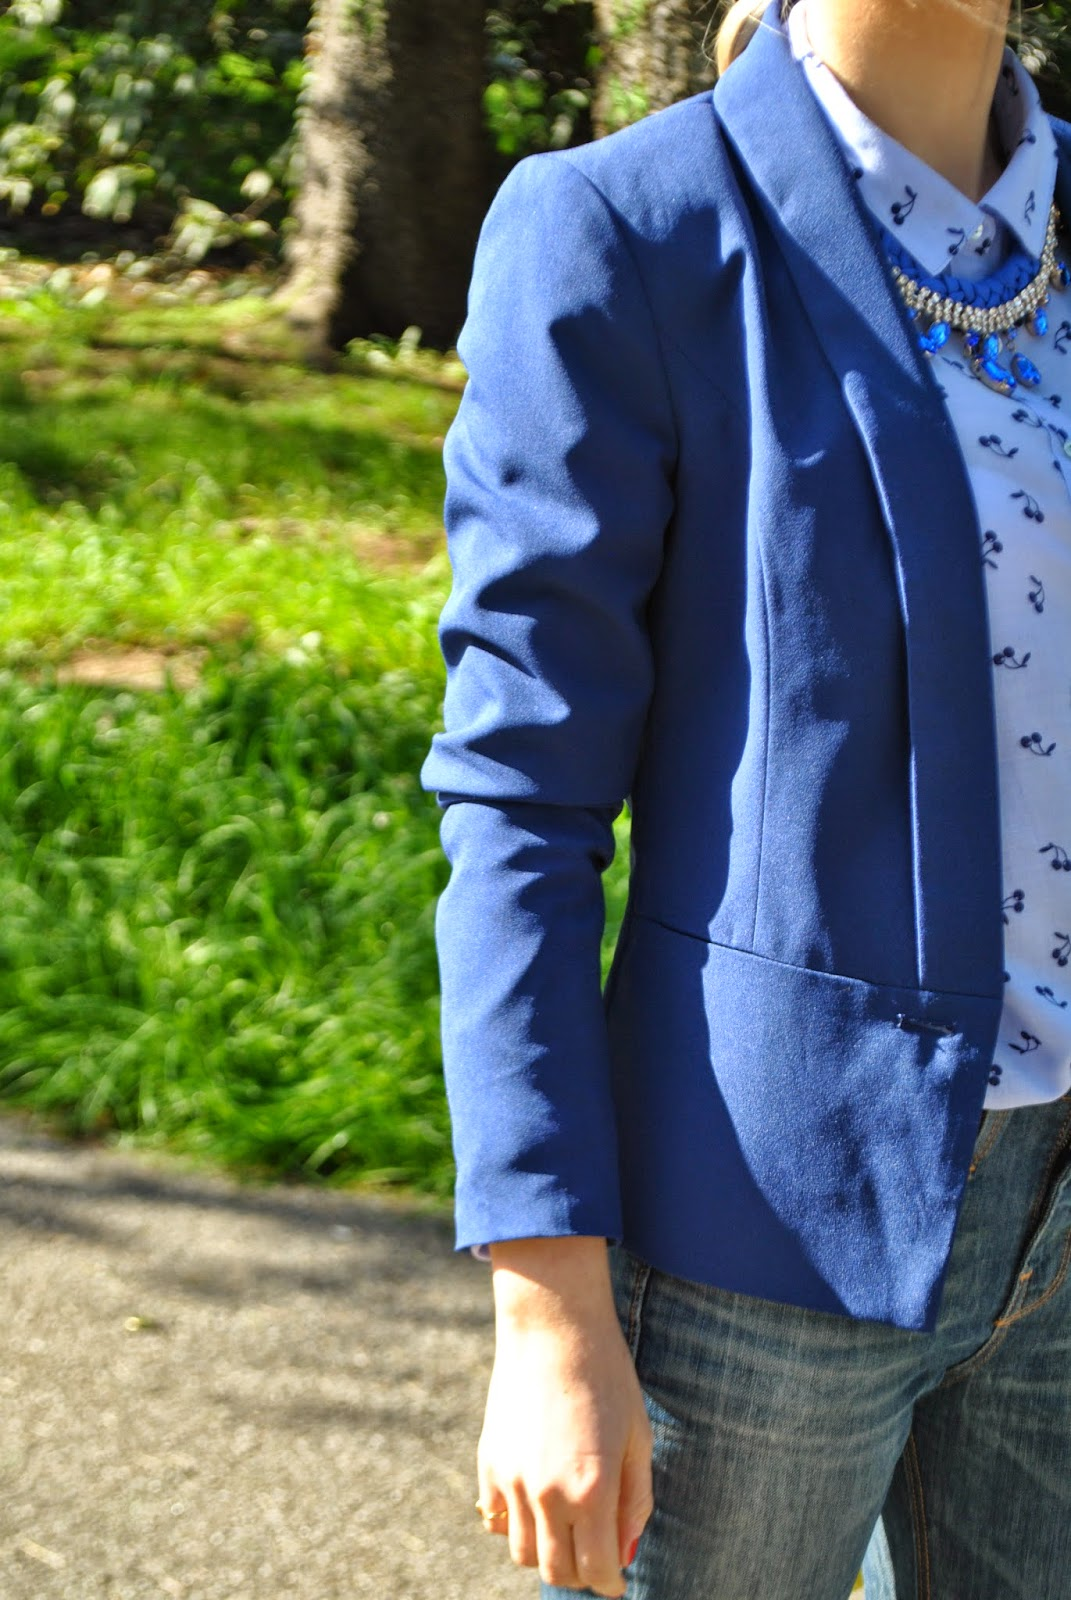 blazer blu outfit blu outfit giacca blu outfit camicia stampa ciliegie camicia pull&bears outfit stringate maschili mariafelicia magno colorblock by felym mariafelicia magno fashion blogger outfit giacca blu come abbinare il blu outfit borsa gialla outfit scarpe blu come abbinare il giallo abbinamenti giallo blu abbinamenti blu outfit aprile 2015 outfit  outfit primaverili casual outfit donna primaverili outfit casual donna spring outfits outfit blue how to wear blue blue blazer yellow bag fashion bloggers italy girl blonde hair blonde girls braids collana pietre blu majique fornarina massimiliano incas